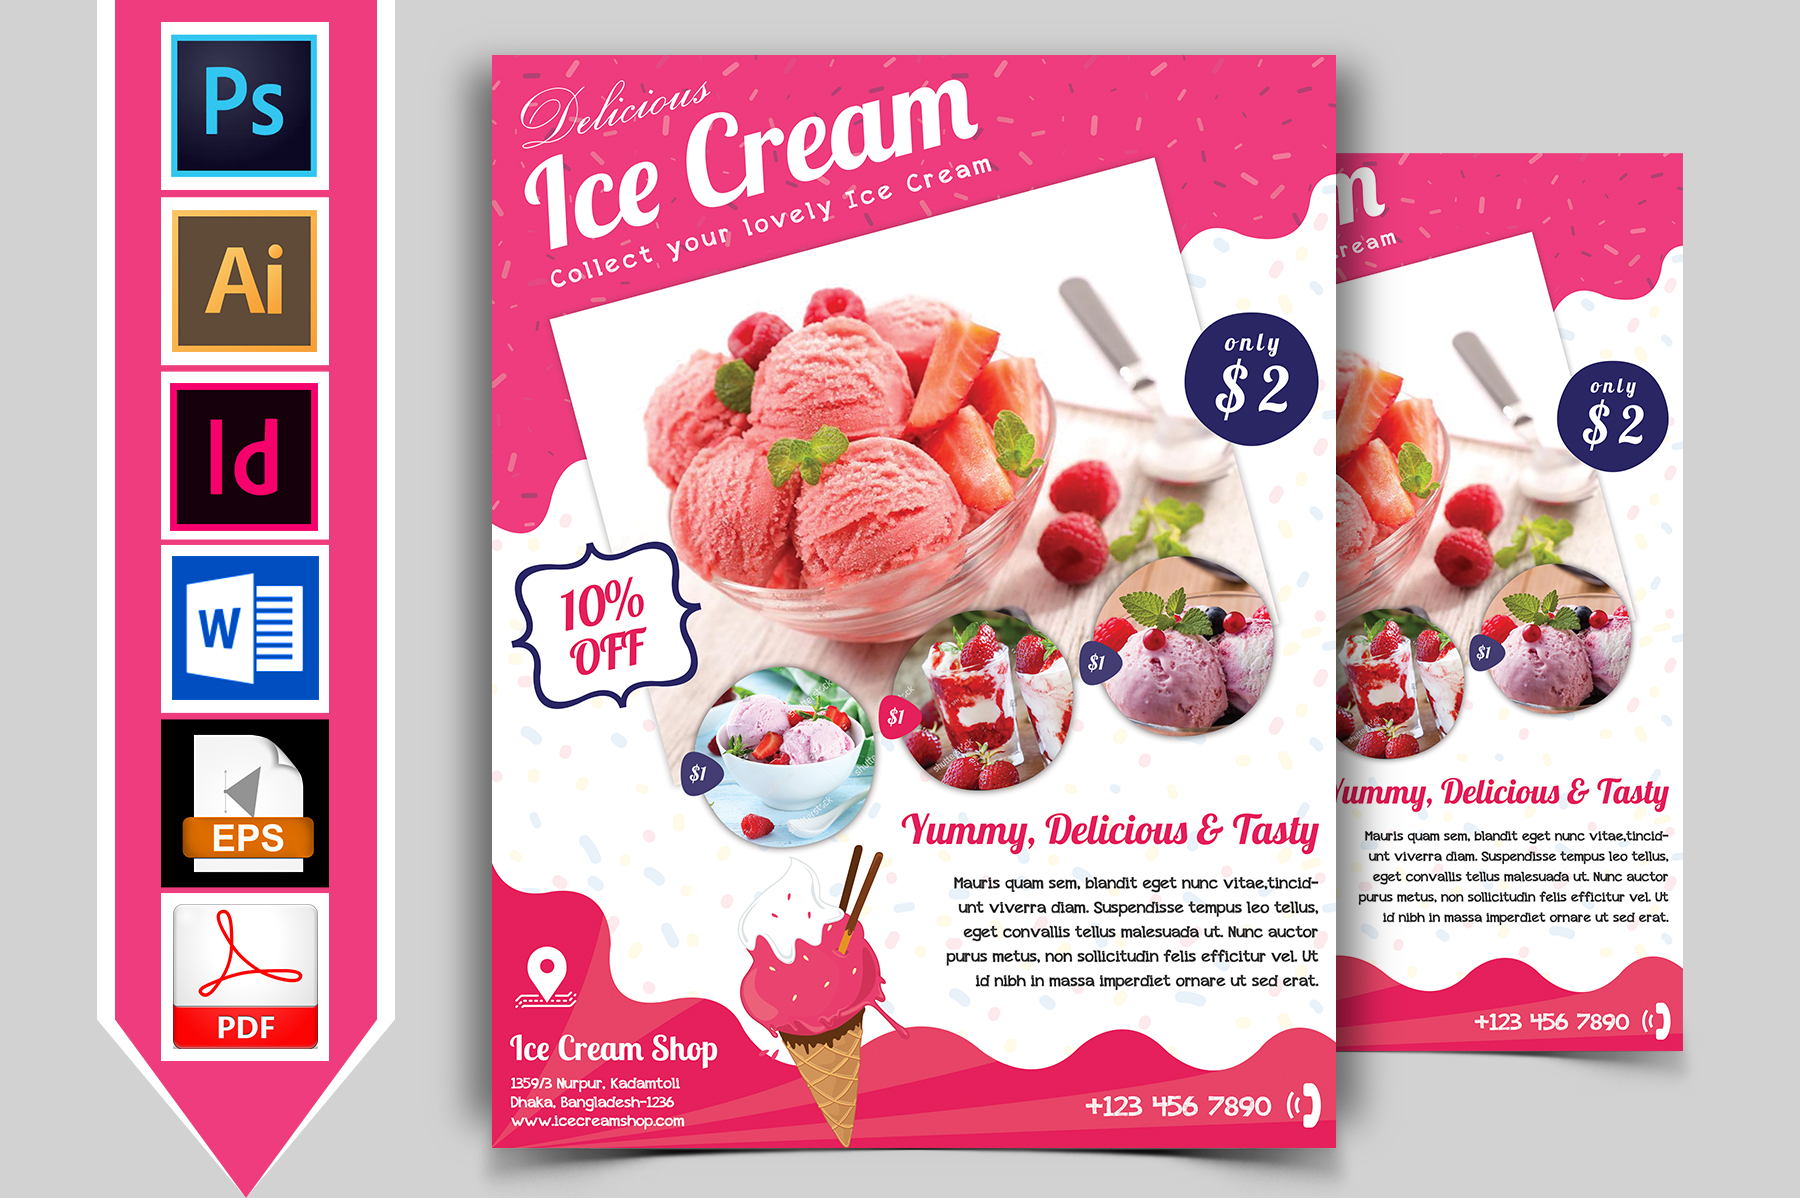 Ice Cream Shop Flyer Template Vol-01 example image 1